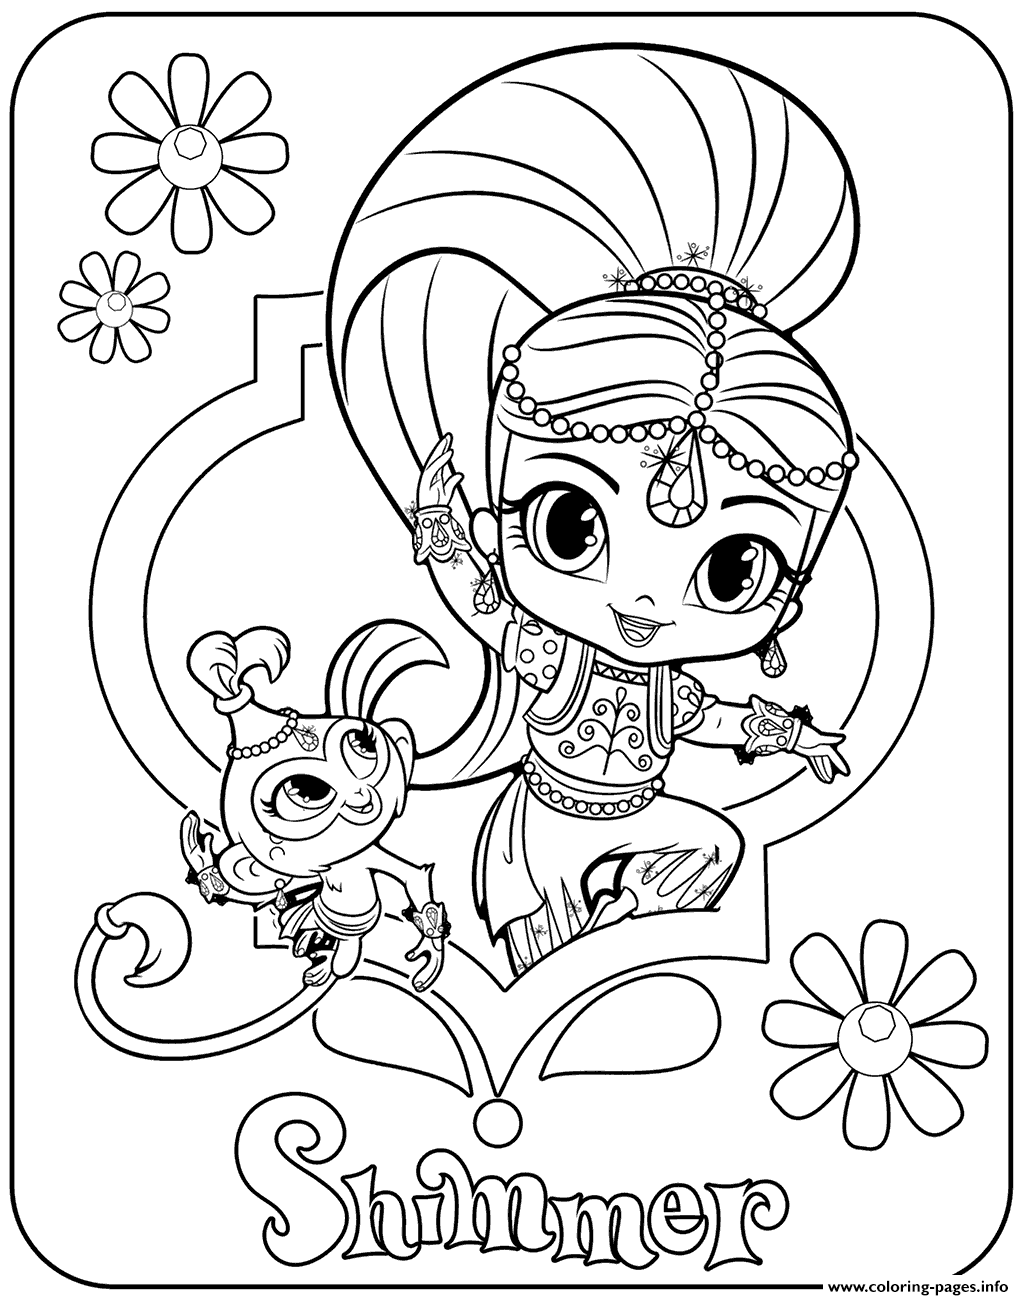 sweet genie shimmer and pet monkey coloring pages printable